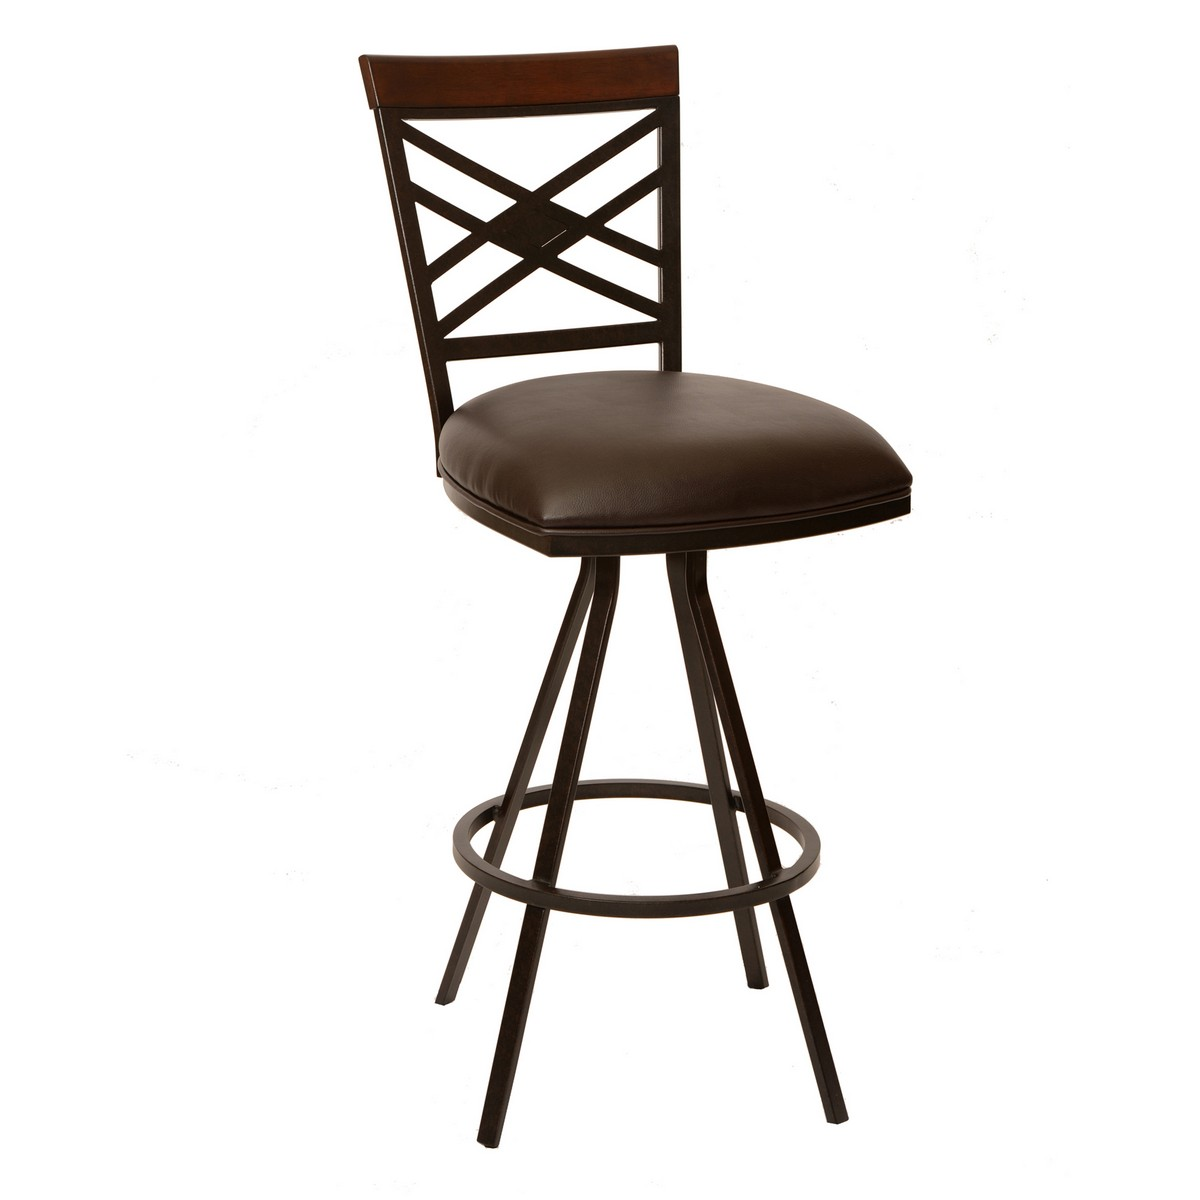 Armen Living Zoe 26-inch Transitional Armless Barstool In Coffee and Auburn Bay Metal